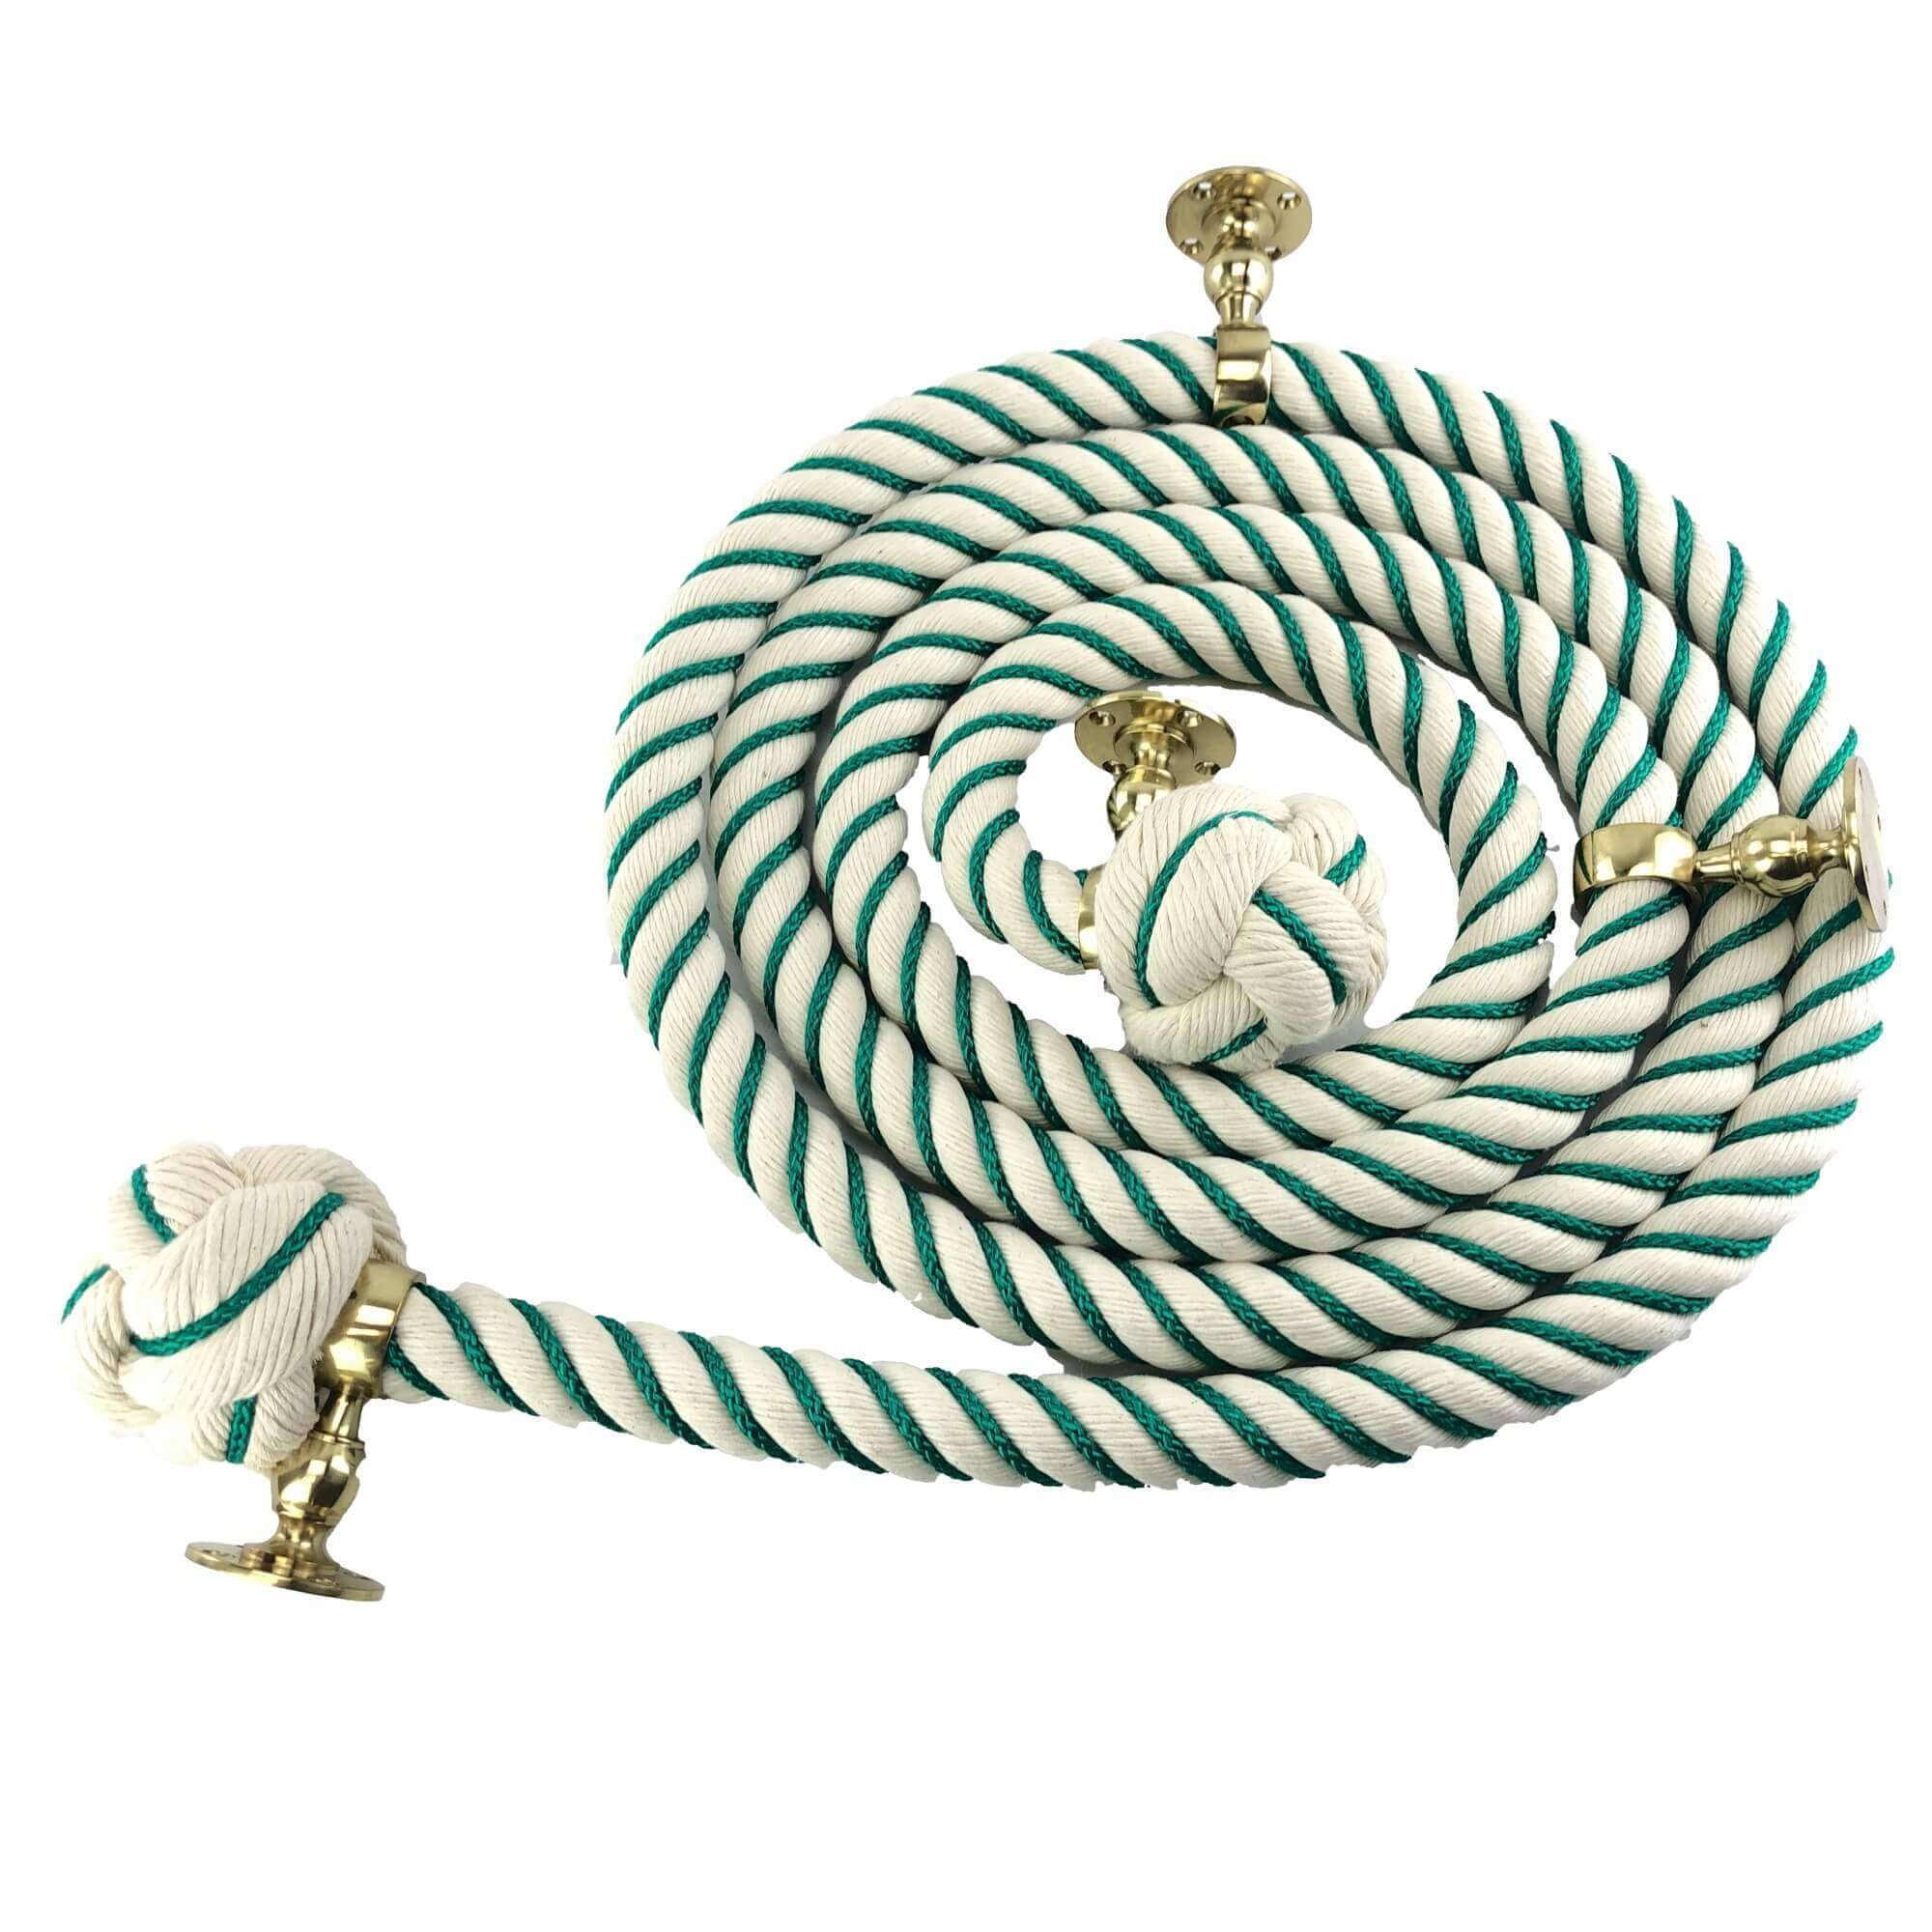 natual cotton 4 polished brass fittings emerald green worming1